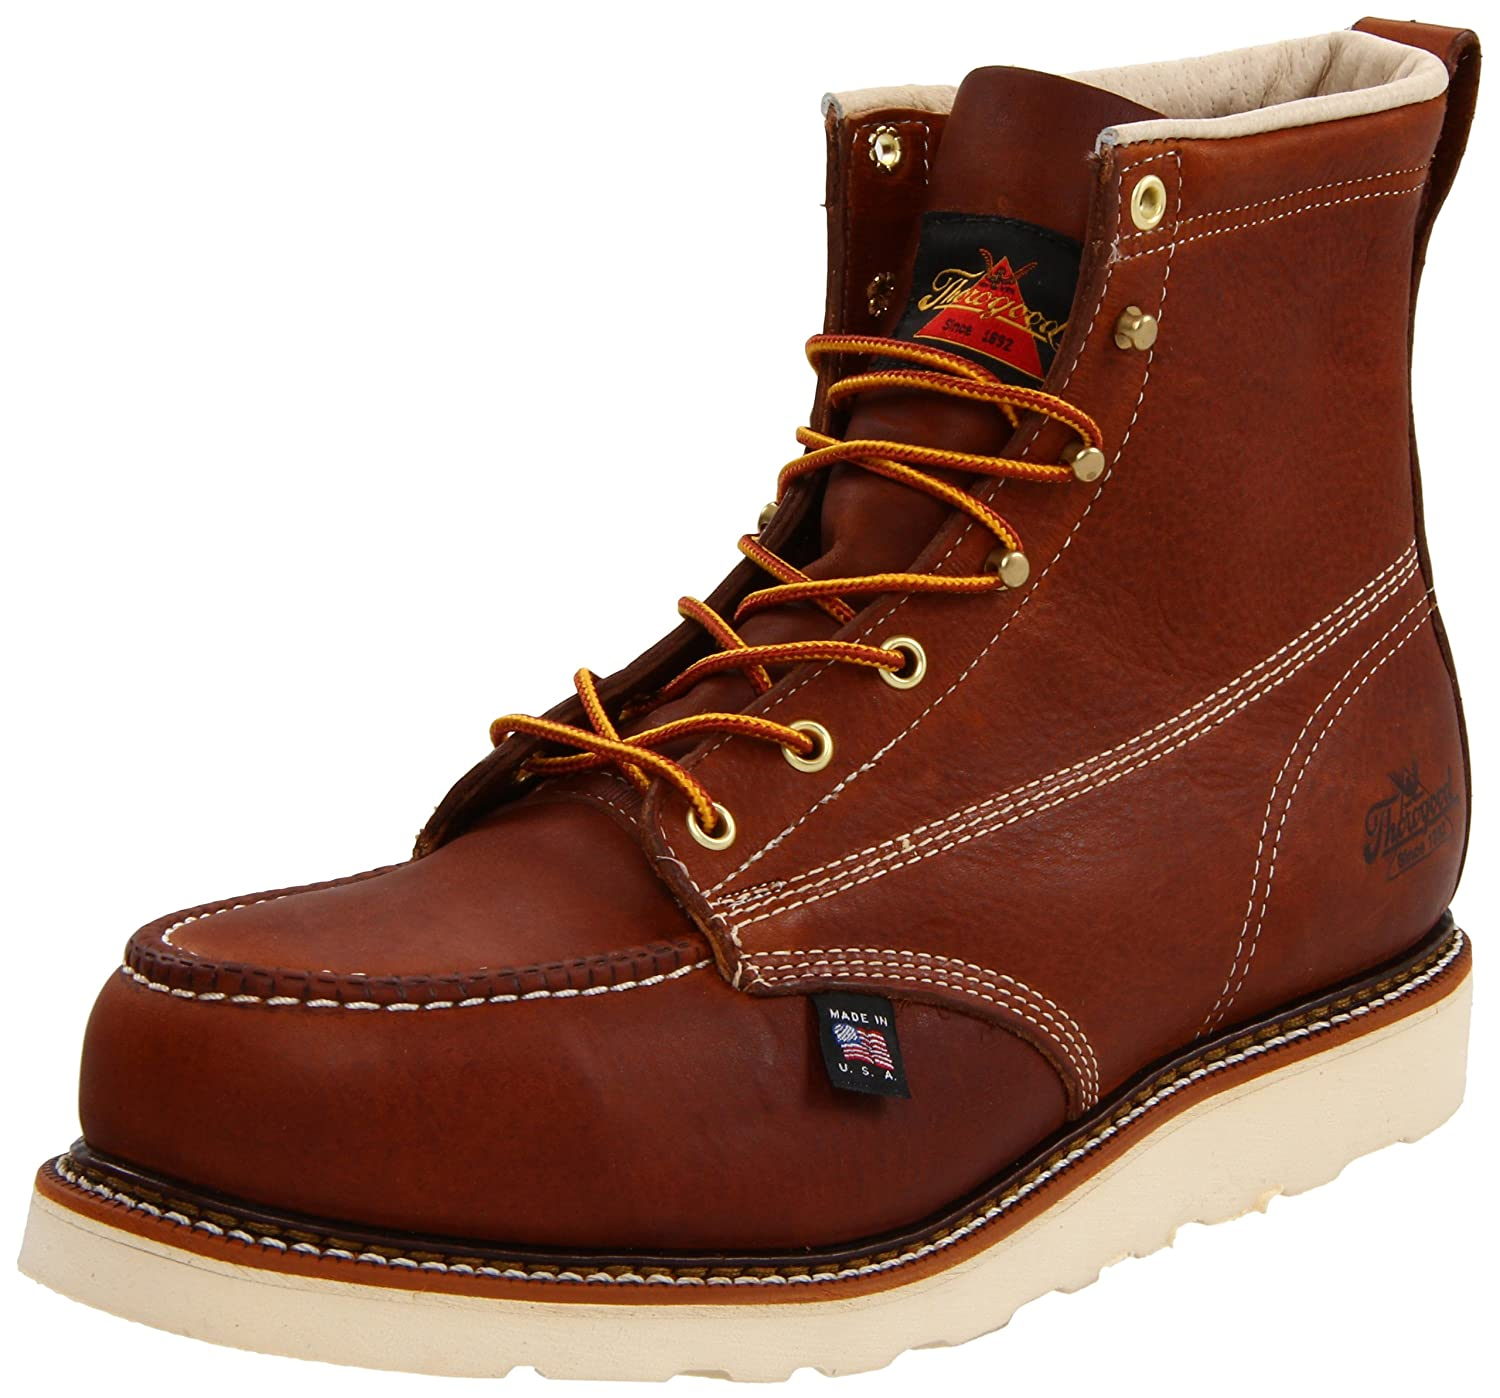 Amazon.com: Thorogood Men&39s American Heritage 804-4200 6-Inch